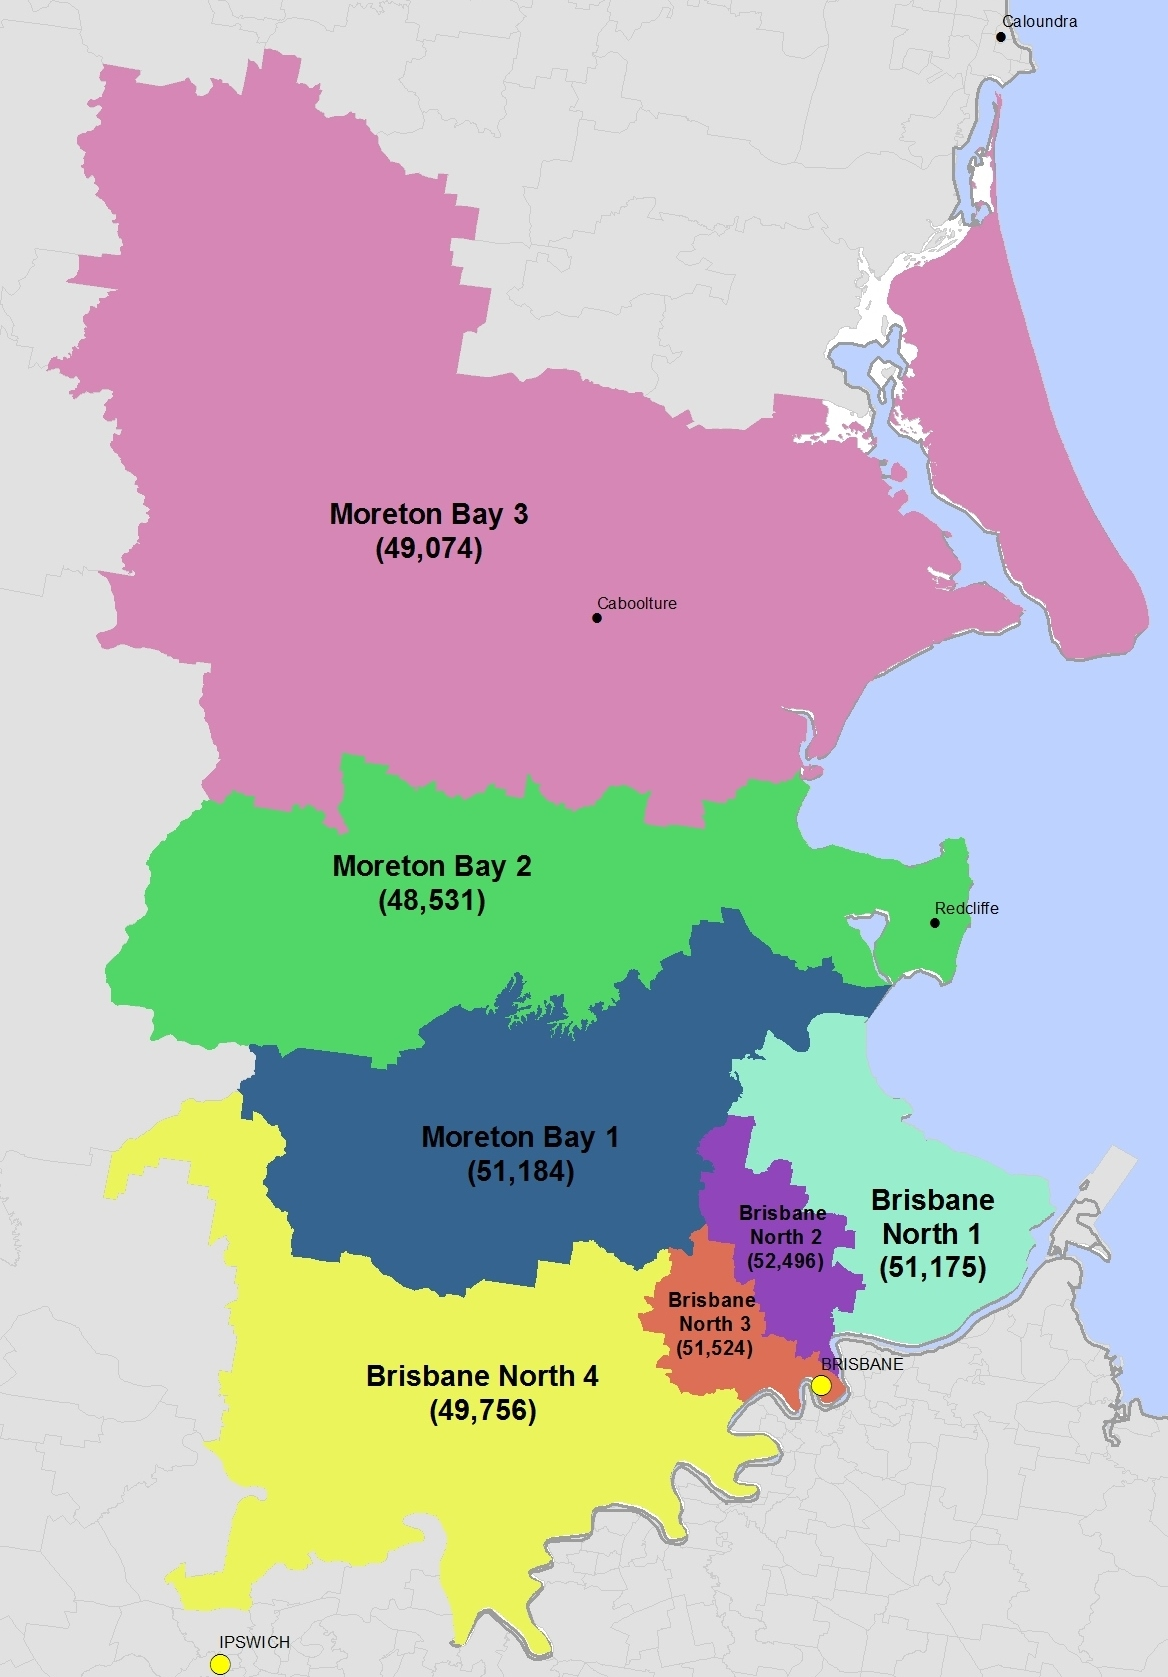 Map Gallery Mapping Services AustraliaMapping Services Australia